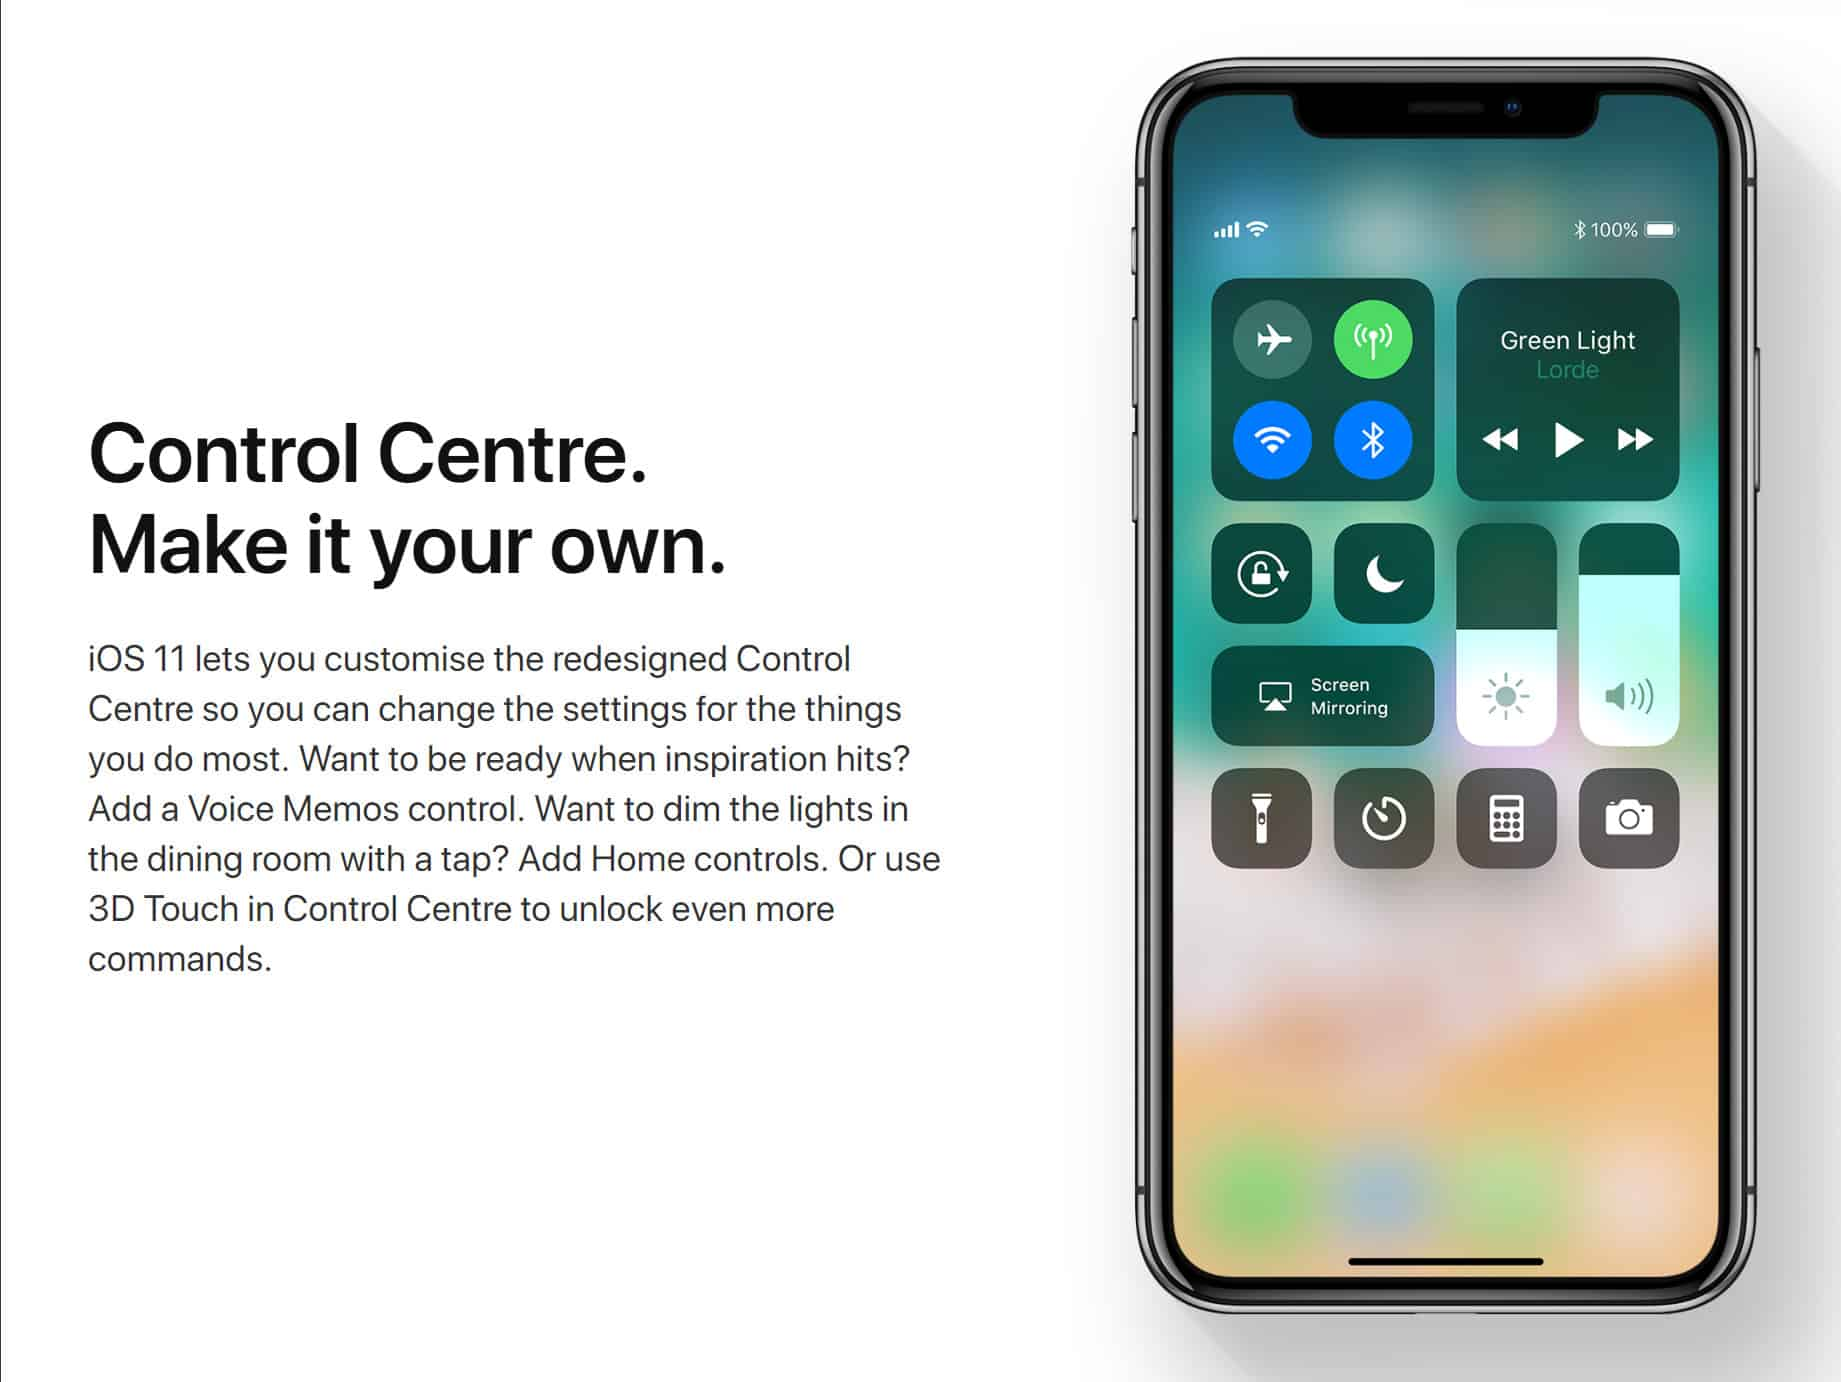 Apple always capitalizes Control Center wherever it's